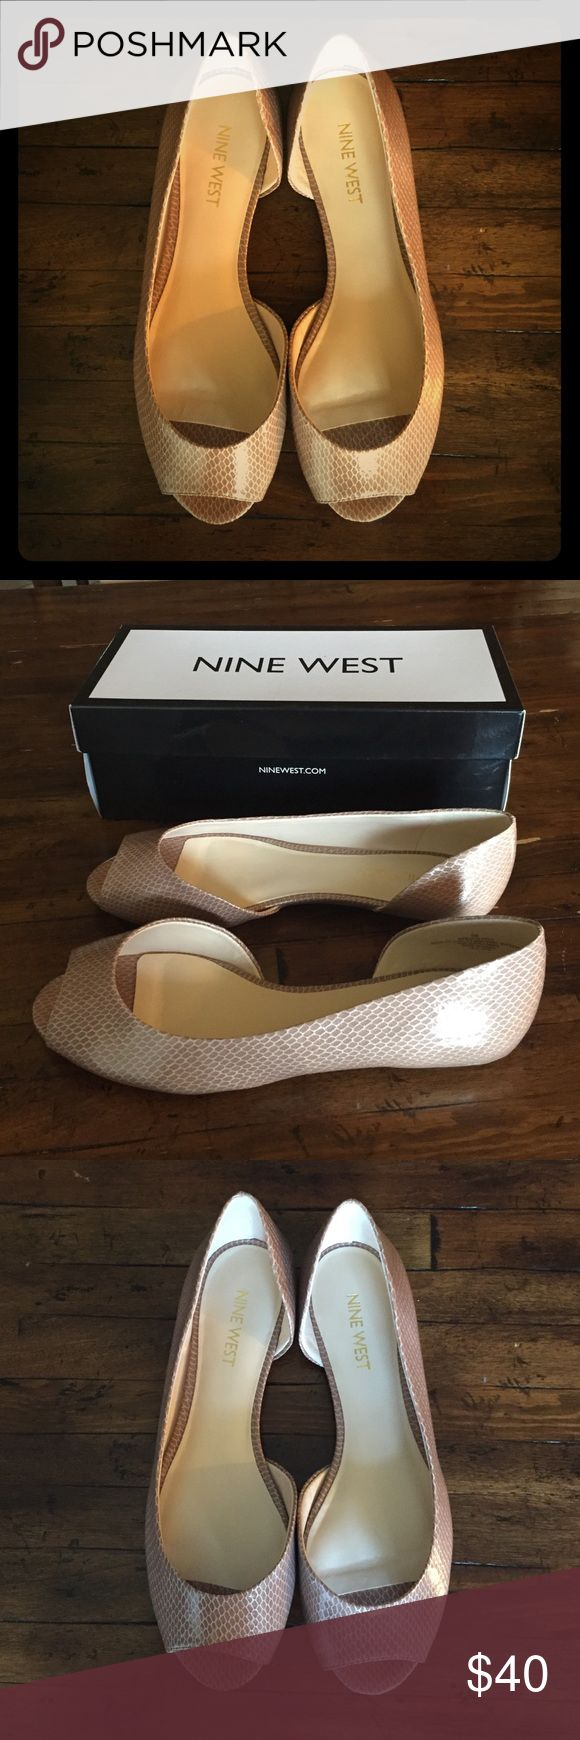 Nine West Bacheloret D'orsay Ballet Flat (New) Brand new (in box) d'orsay peep toe flats Nine West Shoes Flats & Loafers